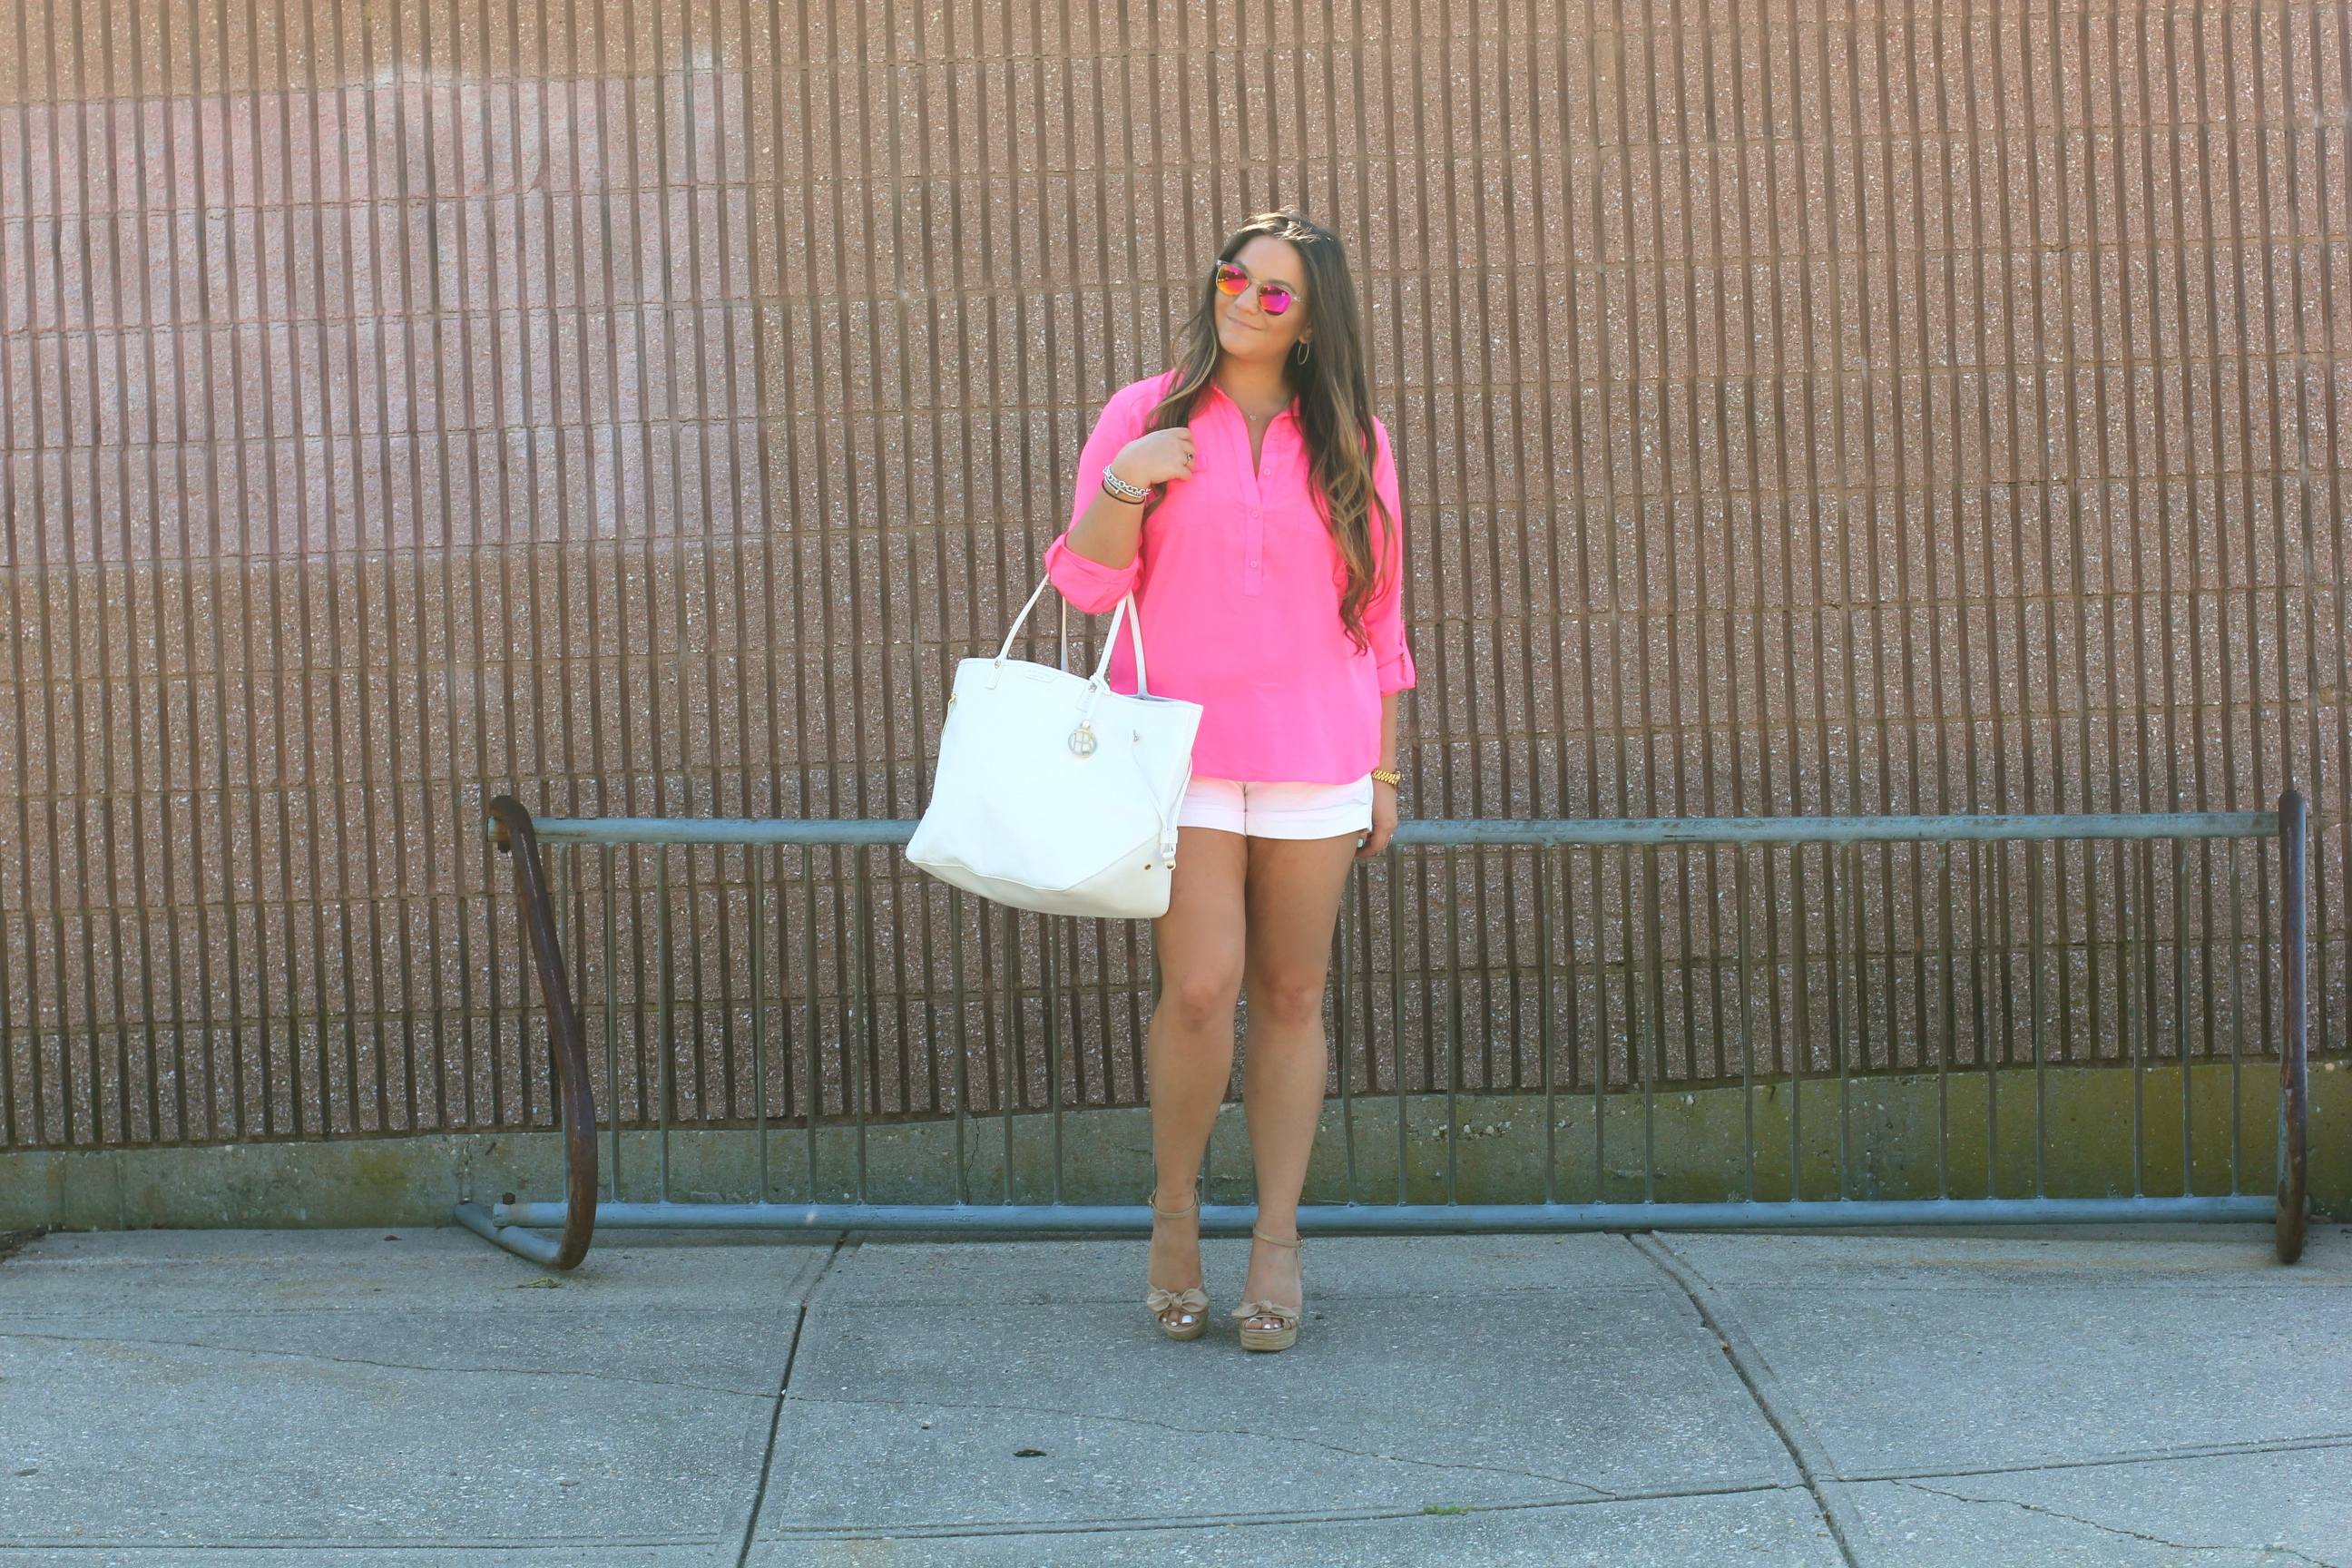 espadrille wedges, missyonmadison, melissa tierney, nude espadrille wedges, long island, long island beaches, hot pink button down blouse, pink blouse, poshmakr, white henri bendel tote, white leather tote, clear mirrored sunglasses, mirrored sunglasses, white cotton shorts, fashion blogger, summer style, outfit inspiration, how to wear neon,